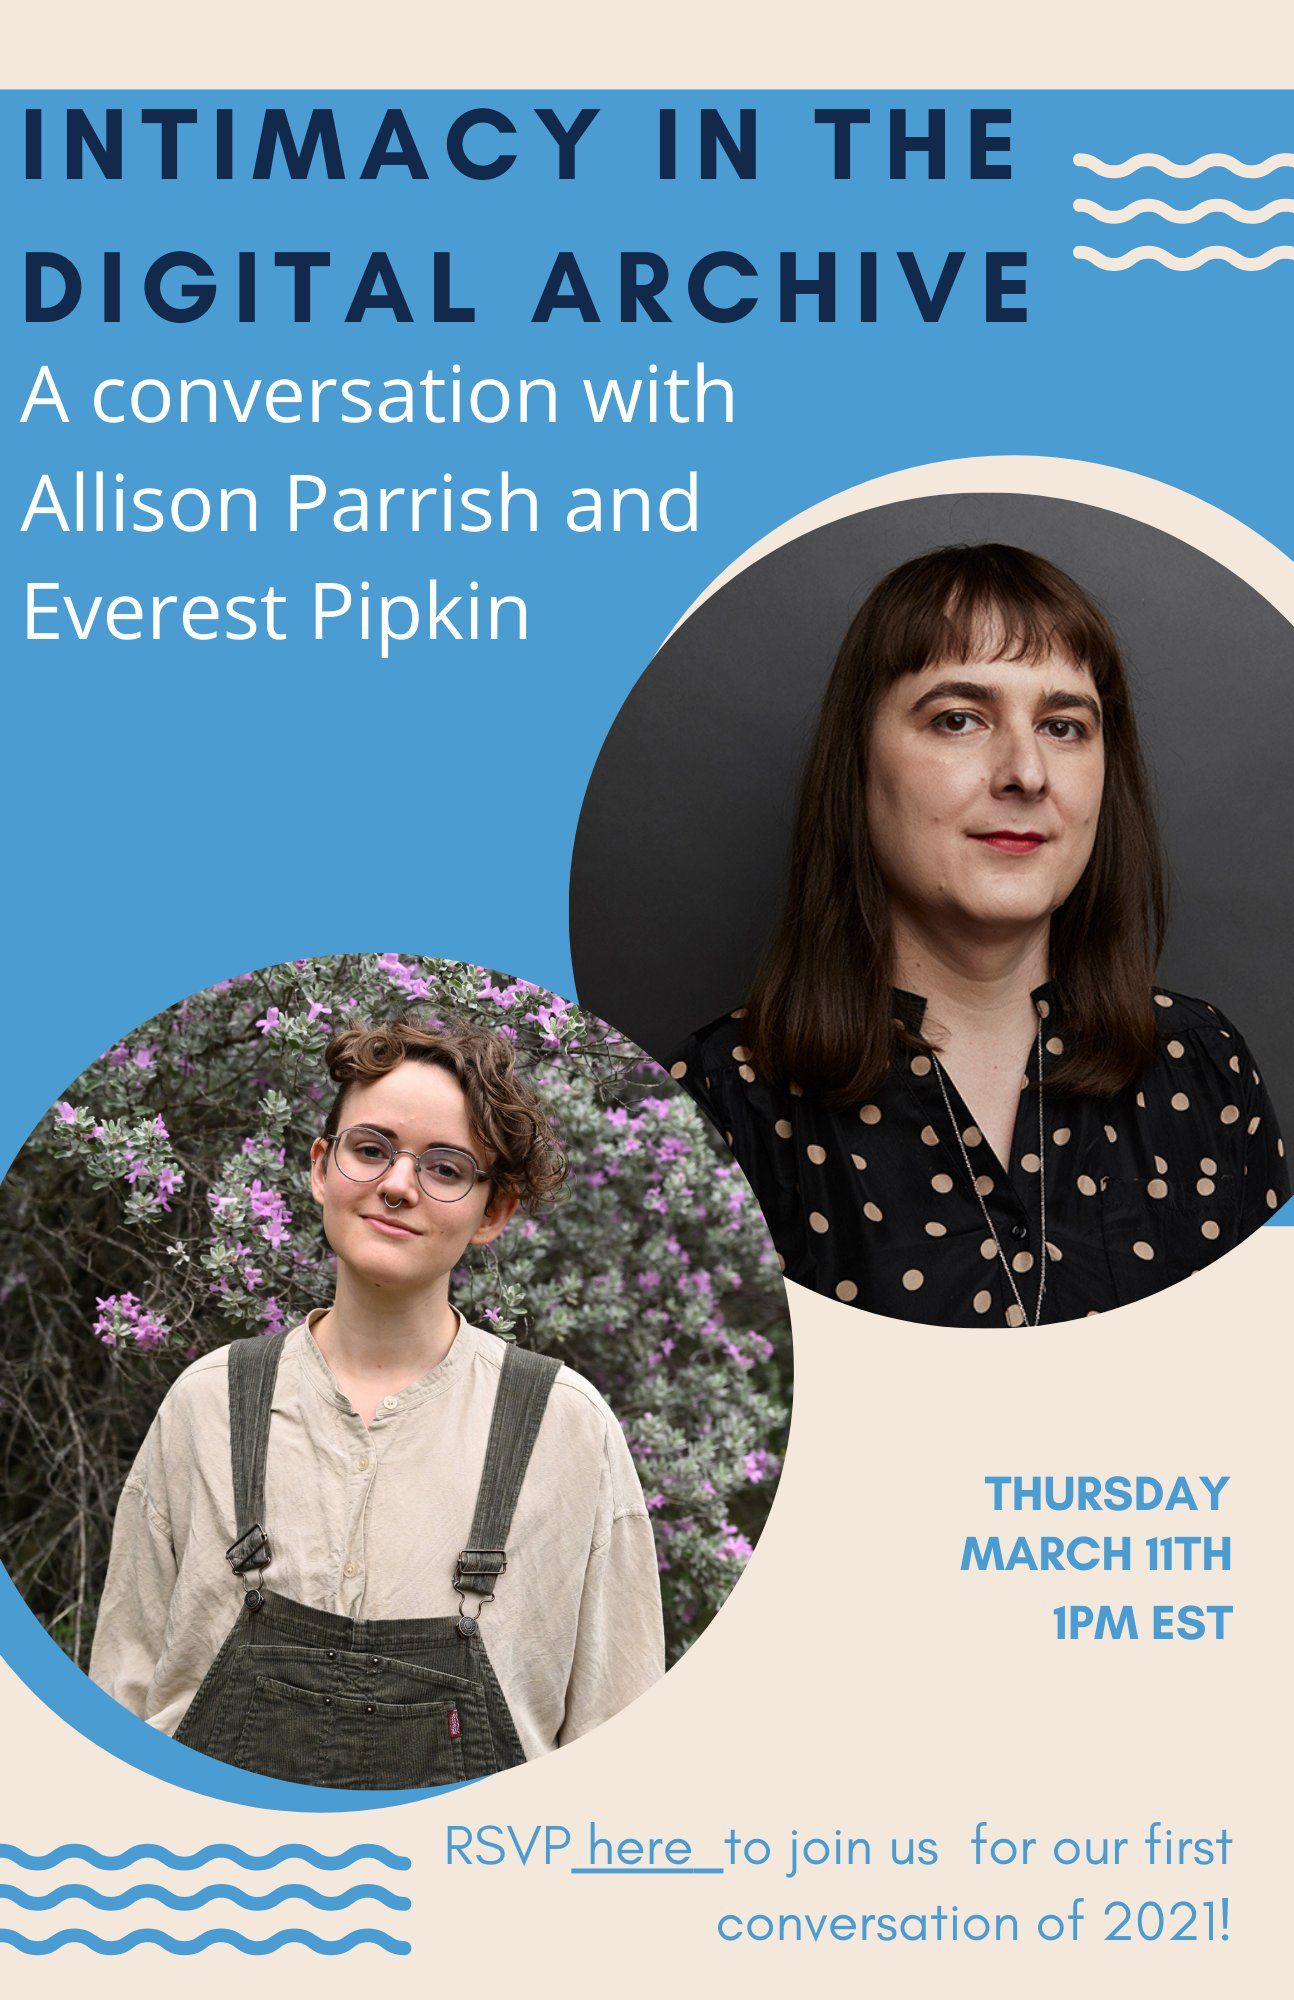 photos of Everest Pipkin and Allison Parrish with information about their talk on Thursday March 11.